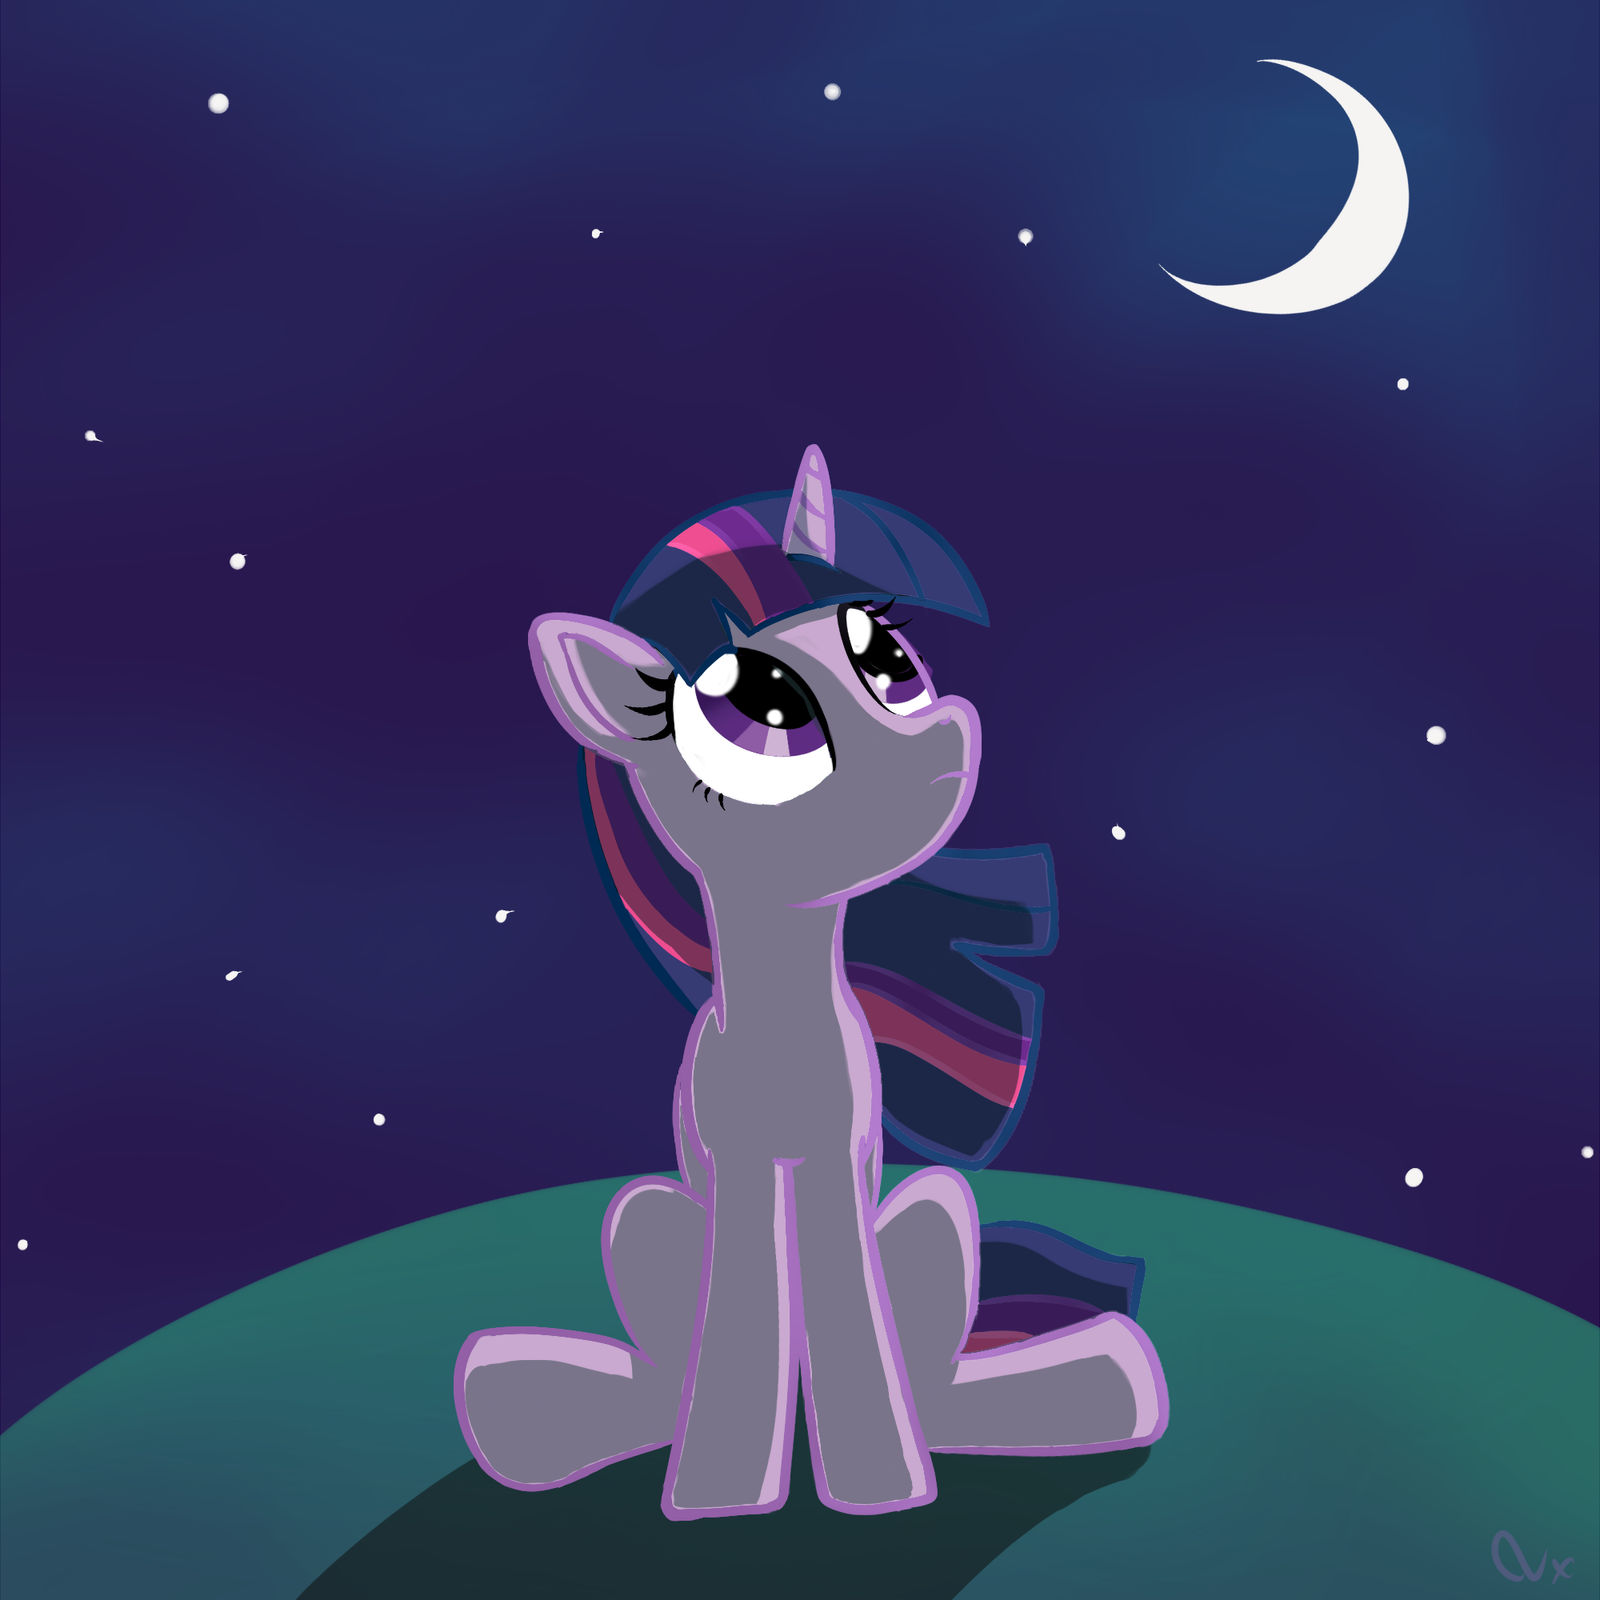 Twilight and the night by Nyax